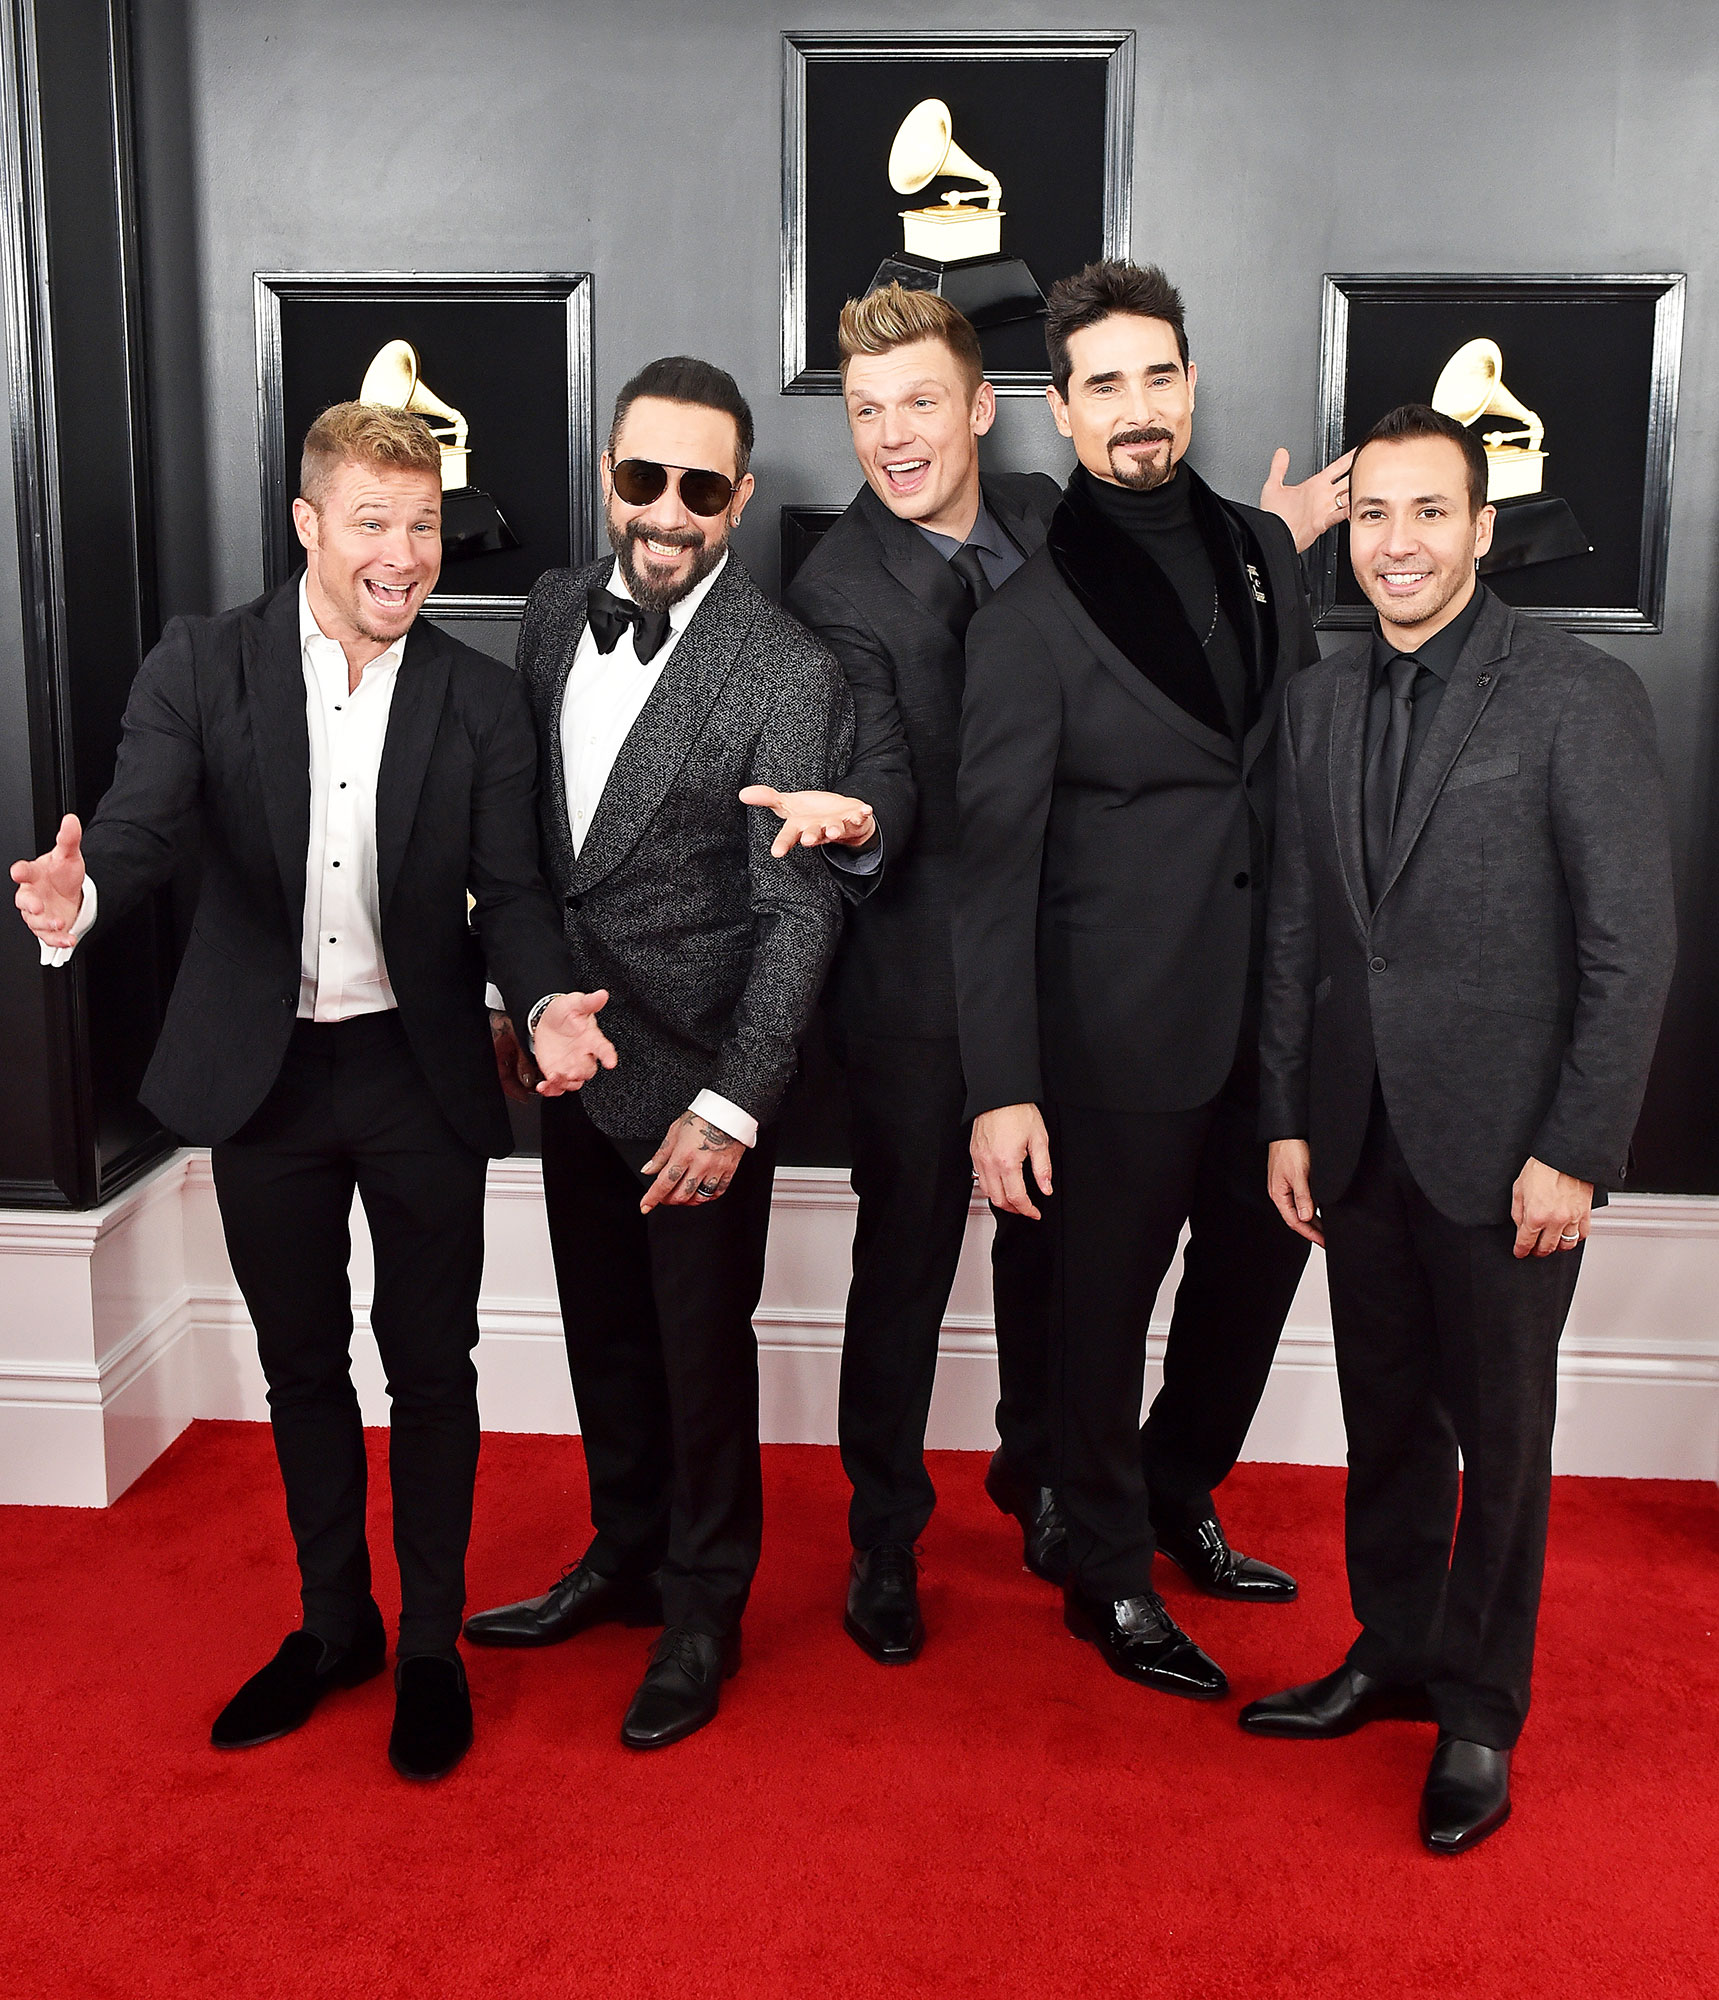 grammys 2019 Brian Littrell, AJ McLean, Nick Carter, Kevin Richardson, and Howie Dorough of Backstreet Boys - Kevin Richardson was dapper in charcoal Giorgio Armani and the rest of his bandmates followed suit (pun intended!) in various shades of grey.